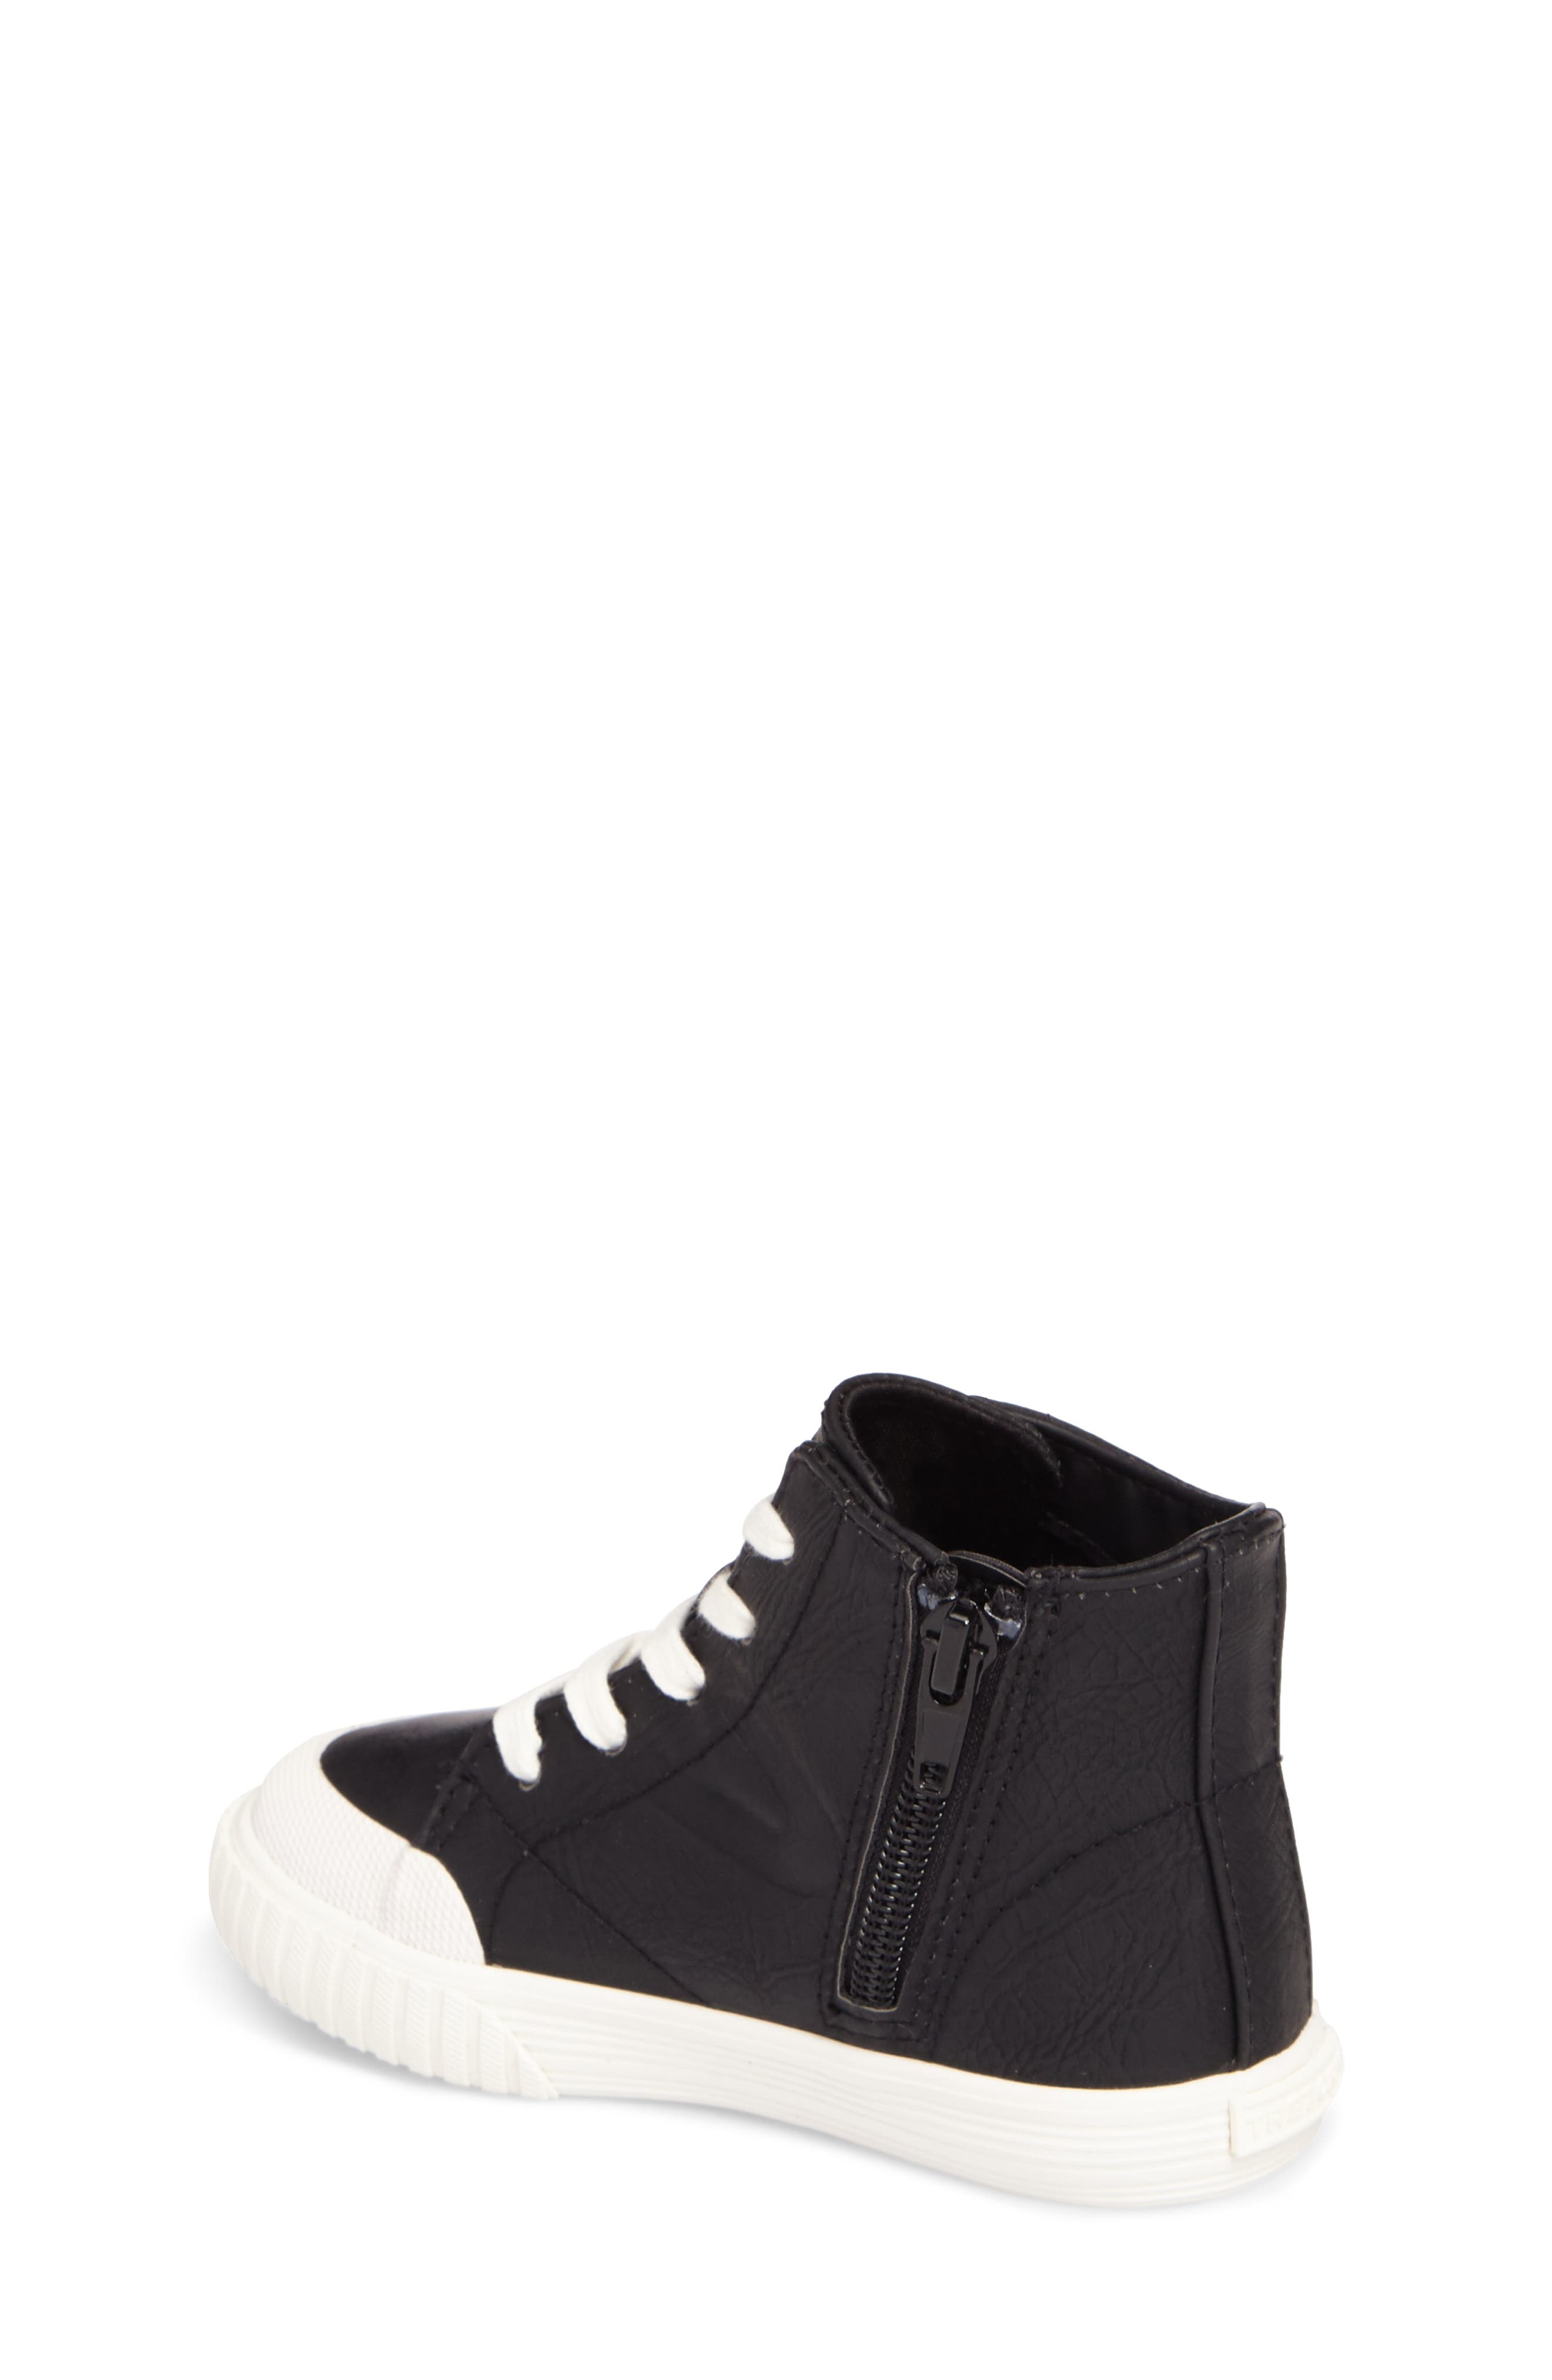 Marley High Top Sneaker,                             Alternate thumbnail 2, color,                             001